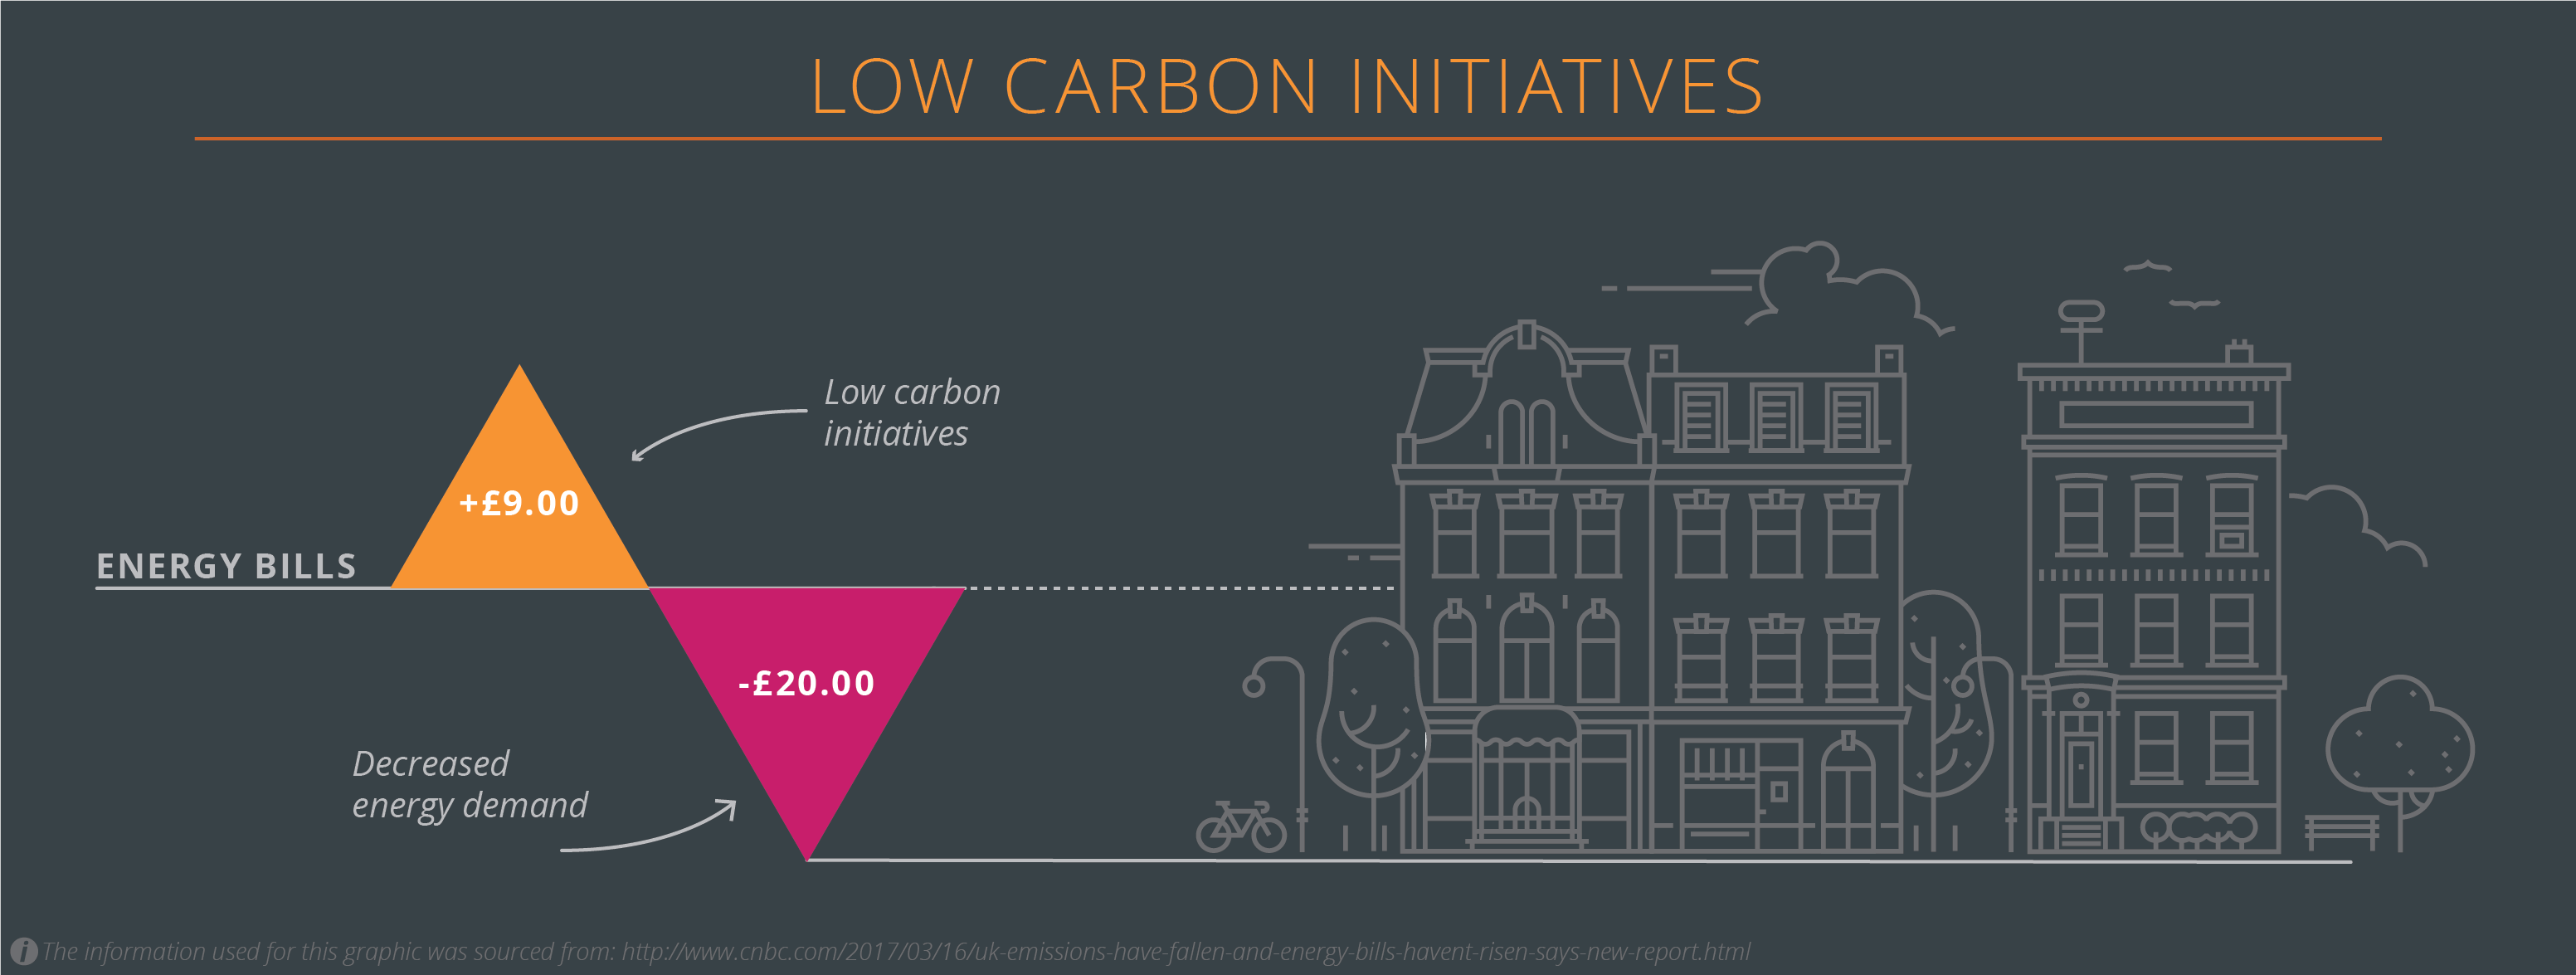 Low Carbon Initiatives